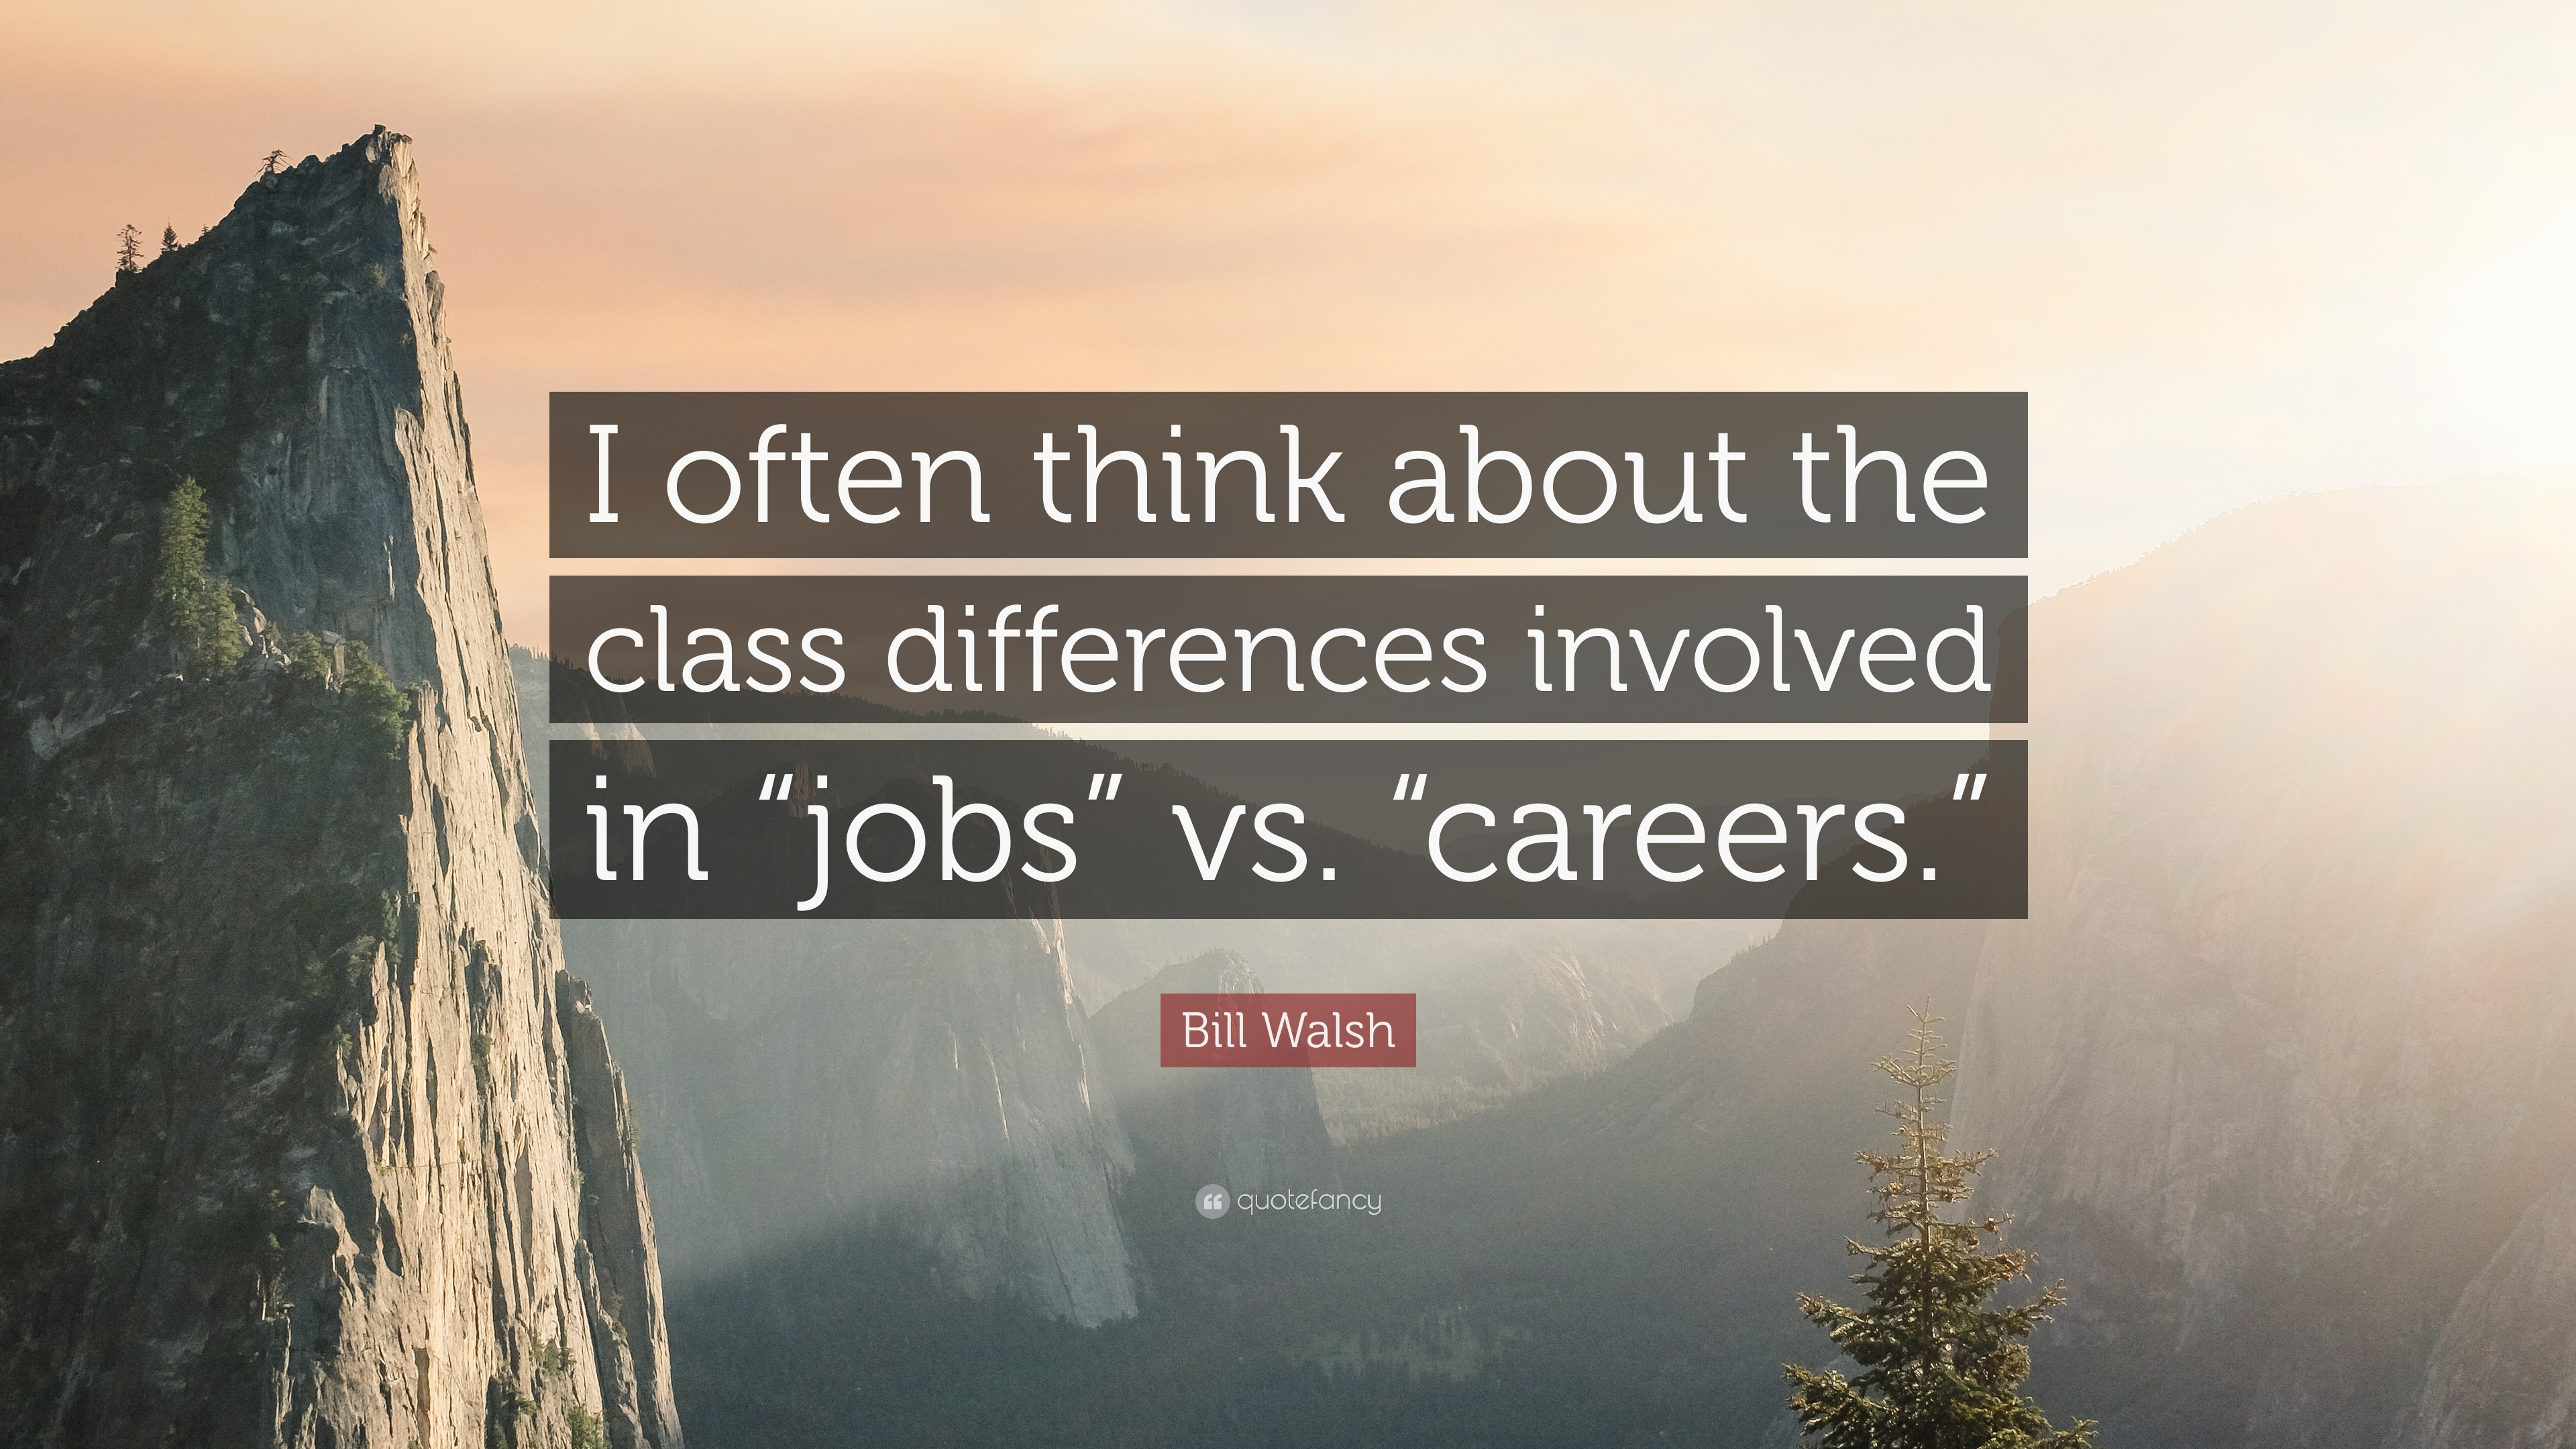 bill walsh quotes 52 quotefancy bill walsh quote i often think about the class differences involved in jobs